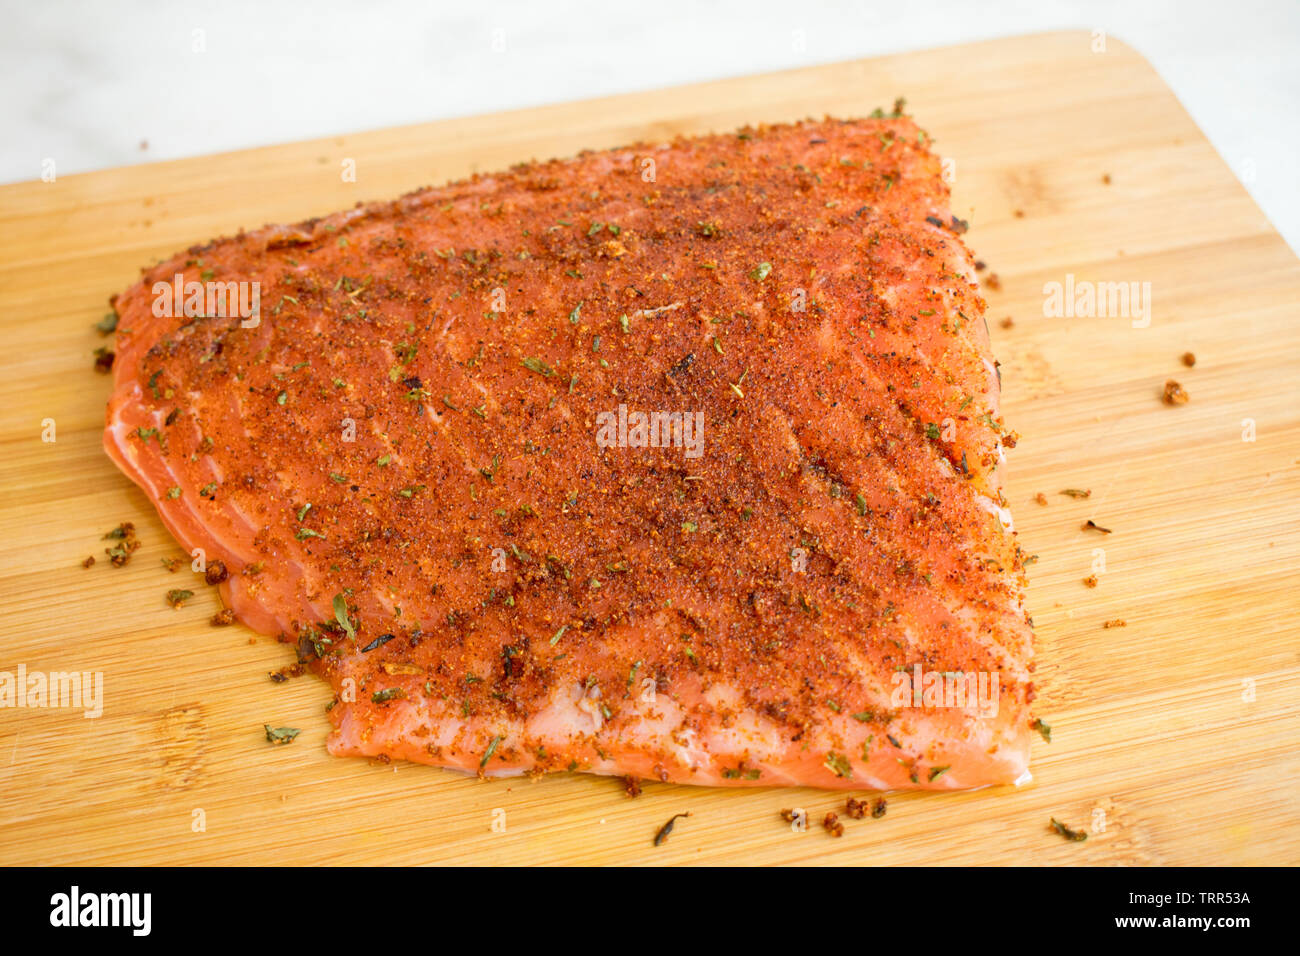 Seasoning Salmon Fillet with Jamaican Jerk Spices - Stock Image